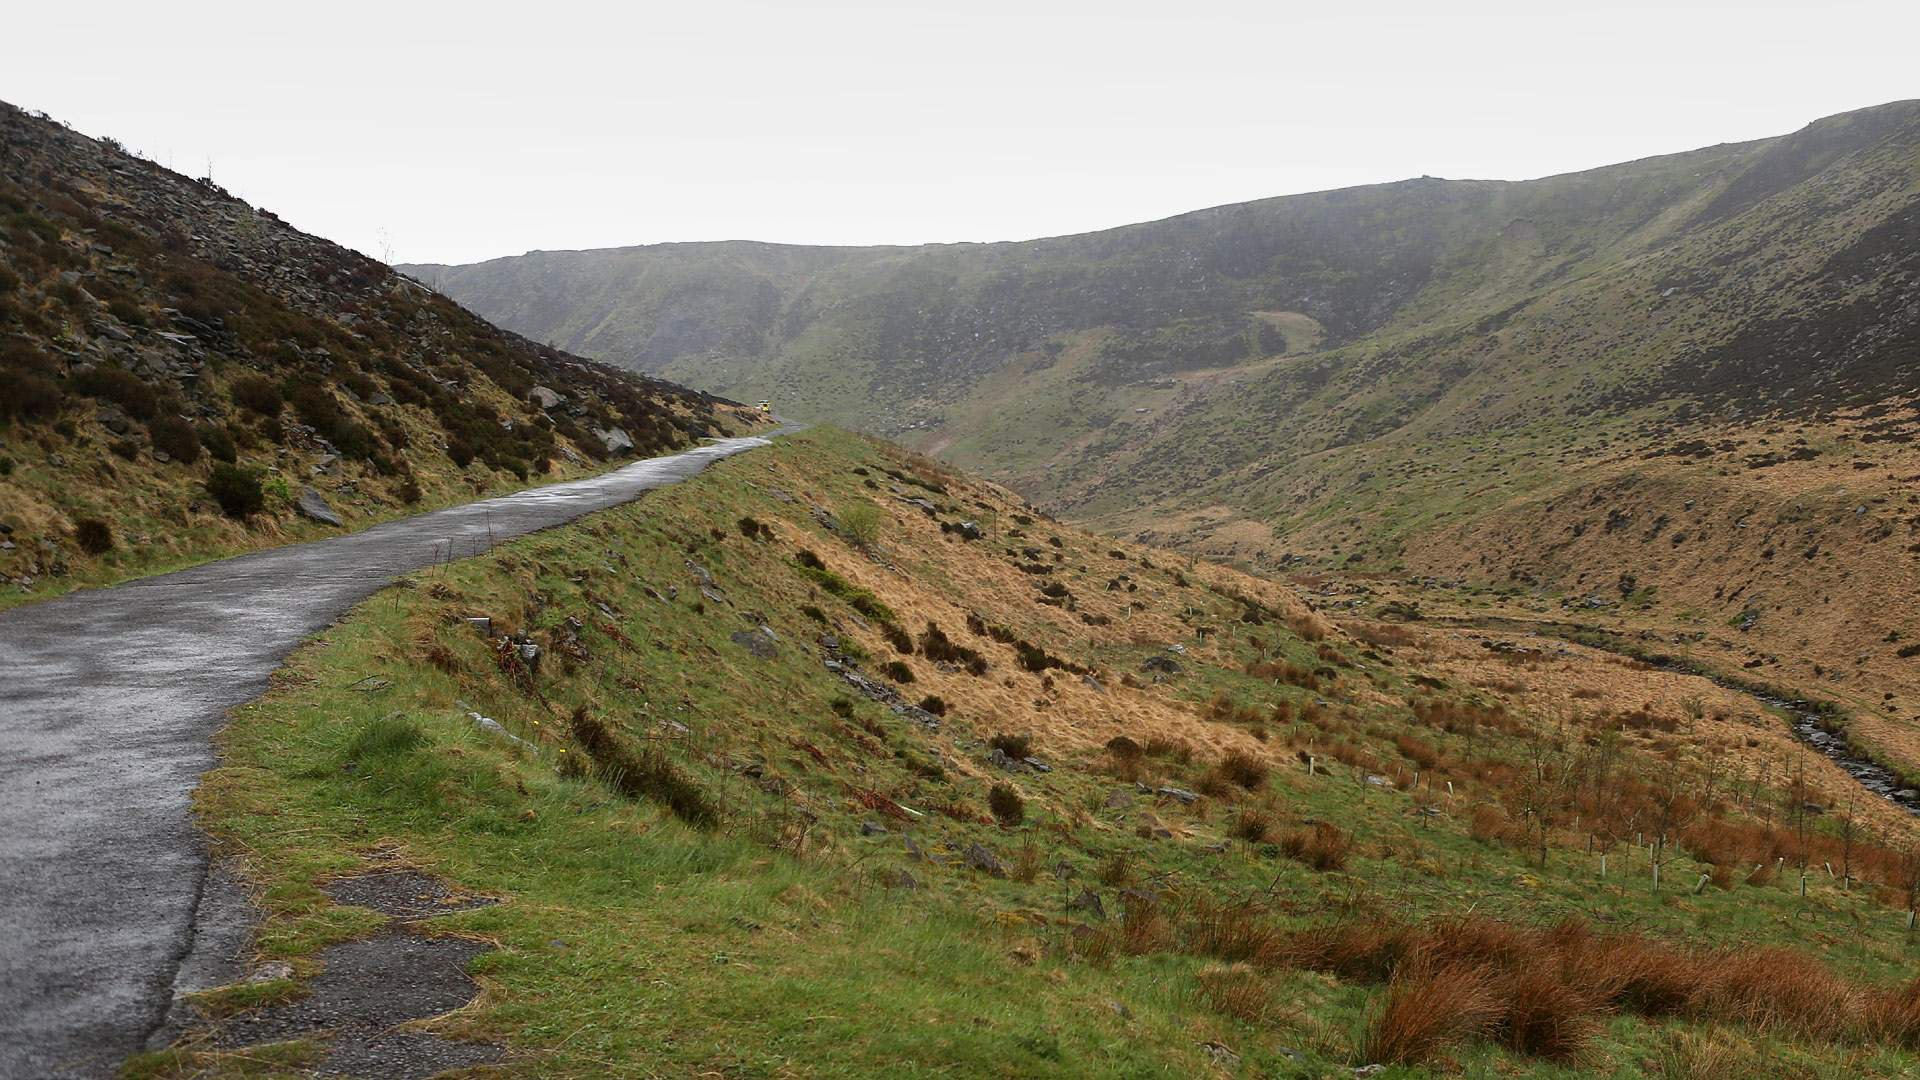 View of empty moors with road leading into the distance